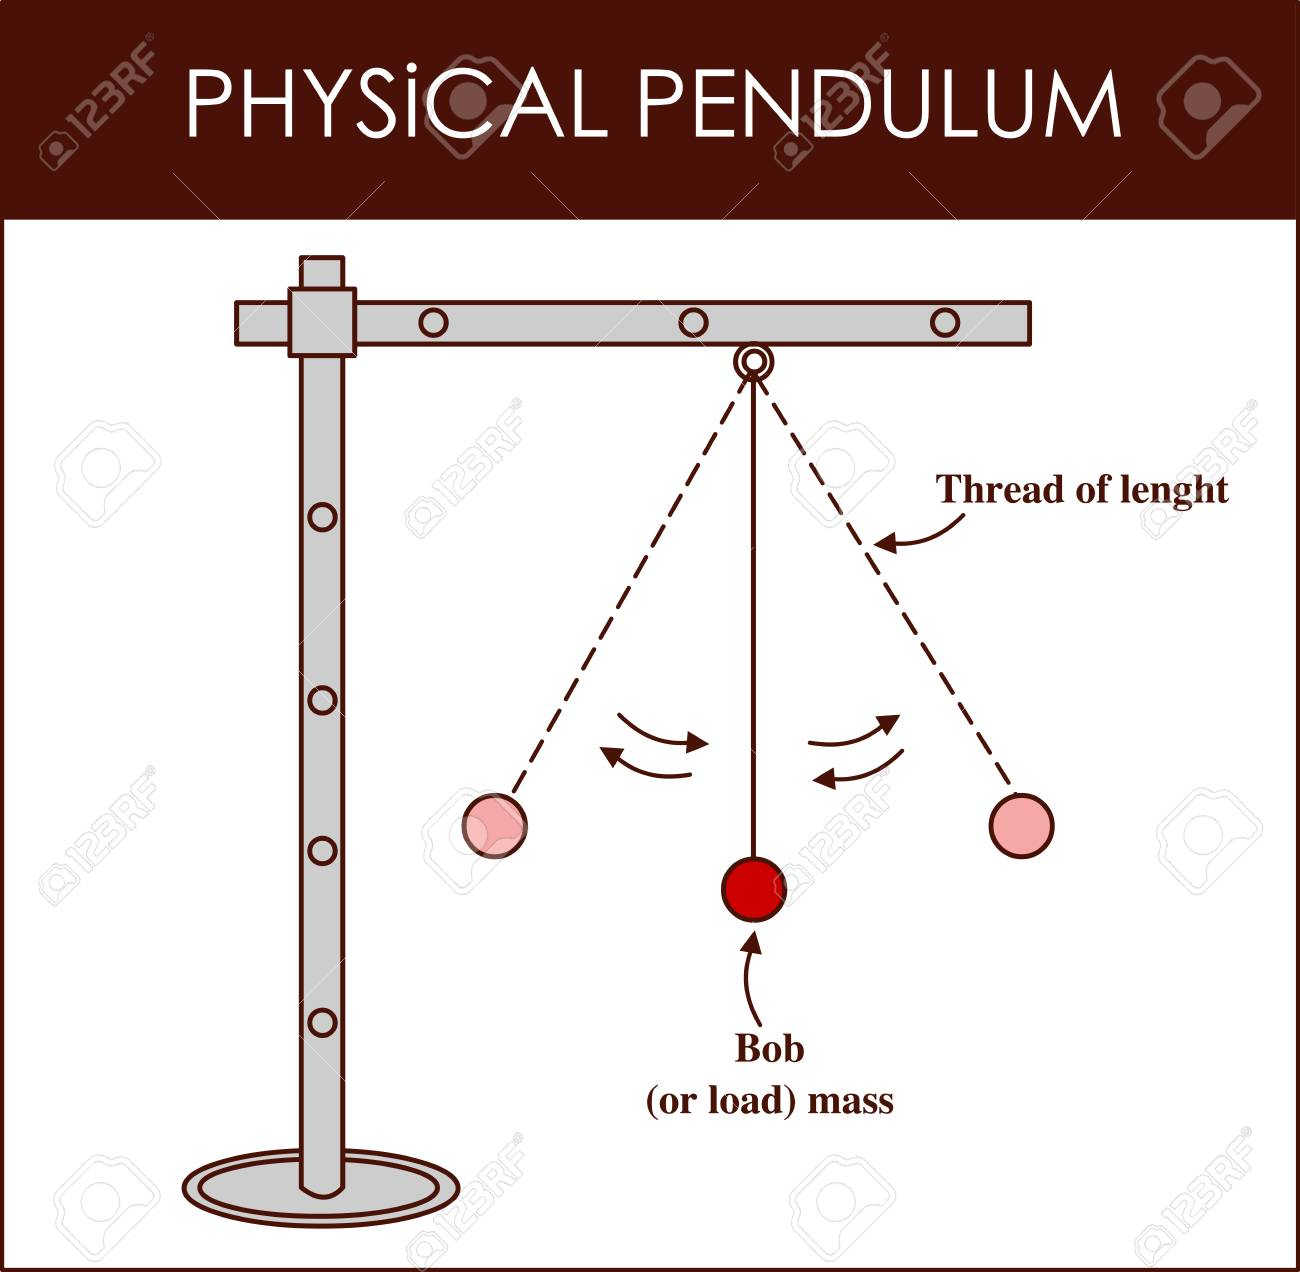 hight resolution of vector vector illustration of a physical pendulum